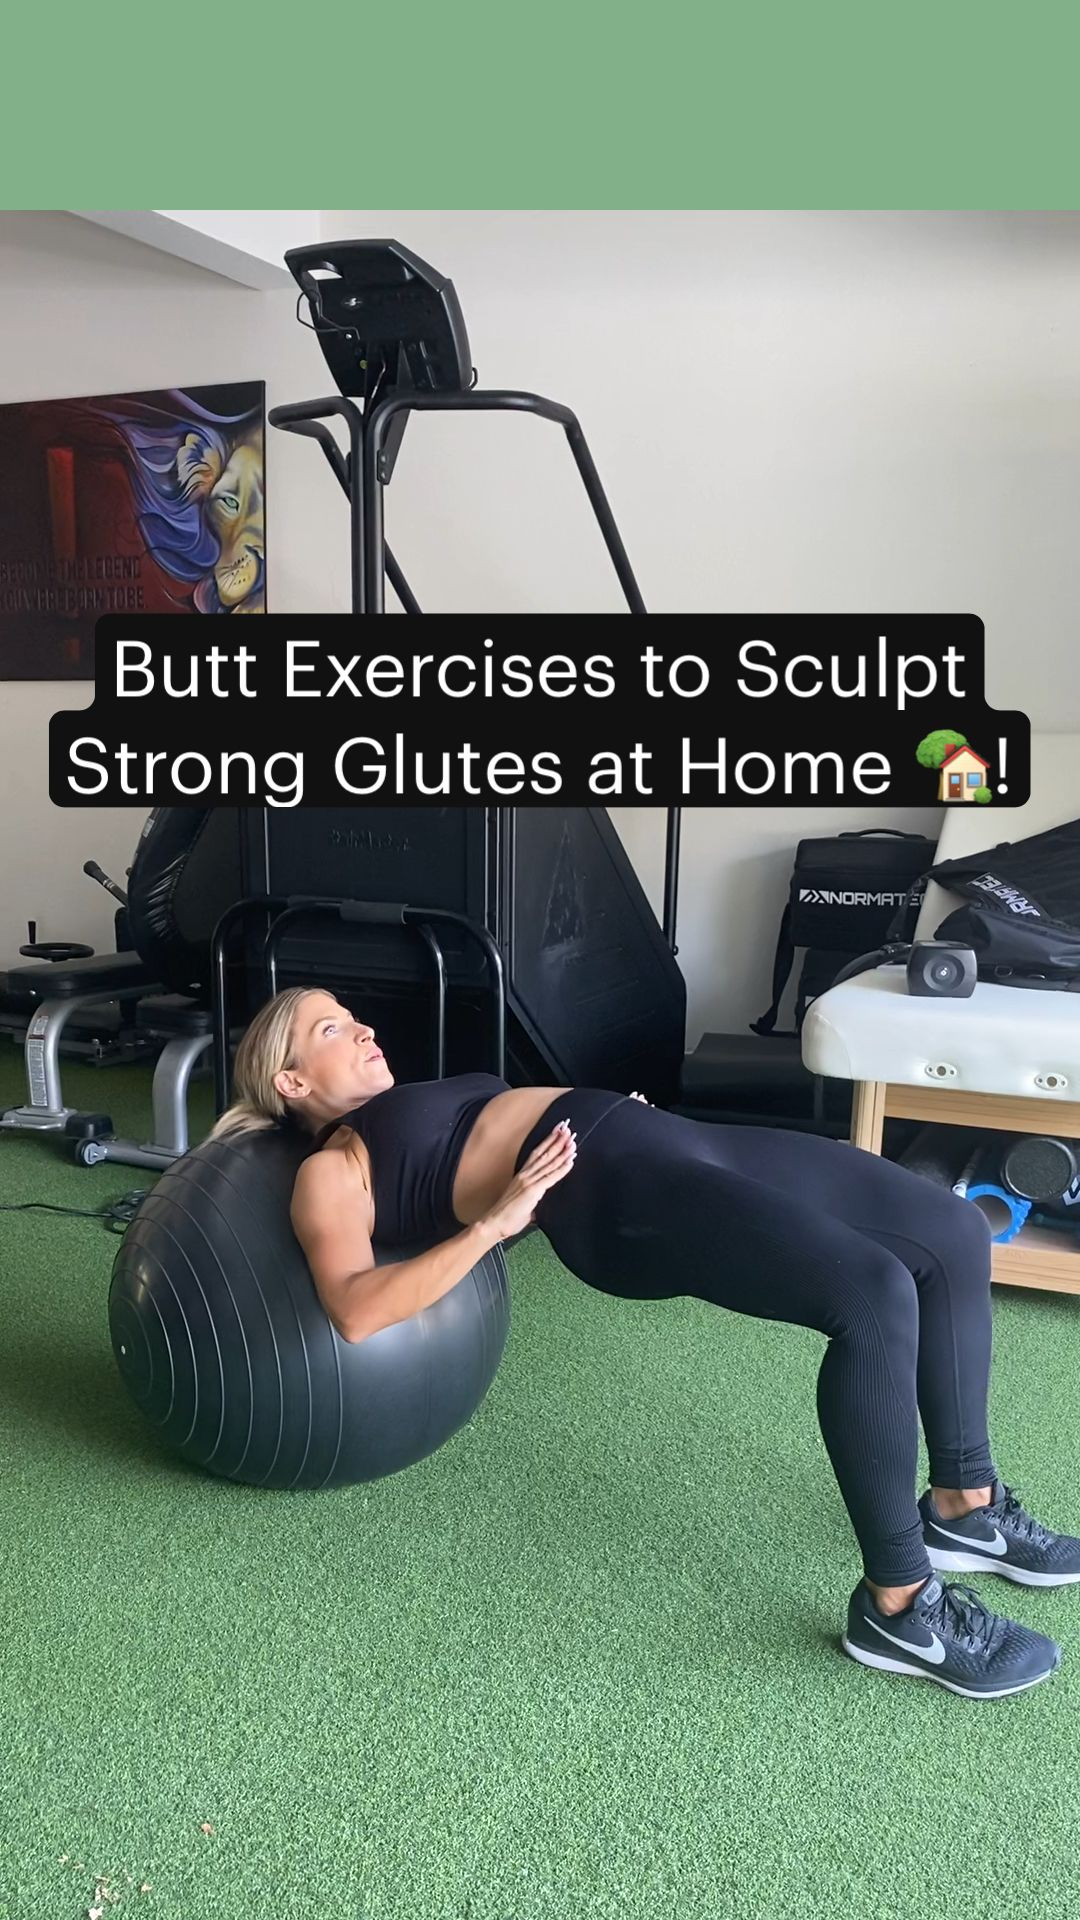 Best Butt Exercises to Sculpt Strong Glutes at Hom